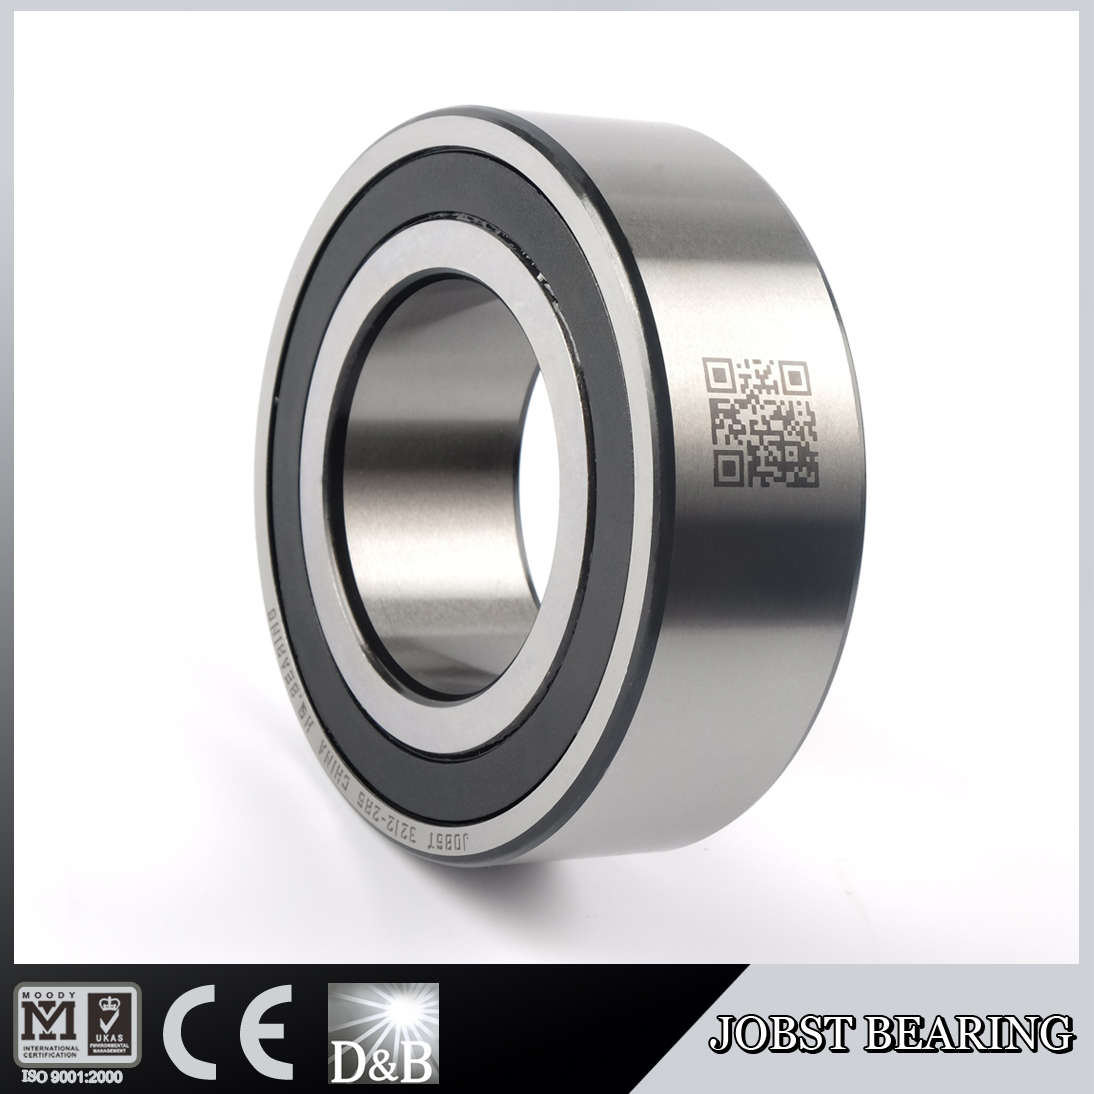 SKF UK and Ireland - Bearings and …